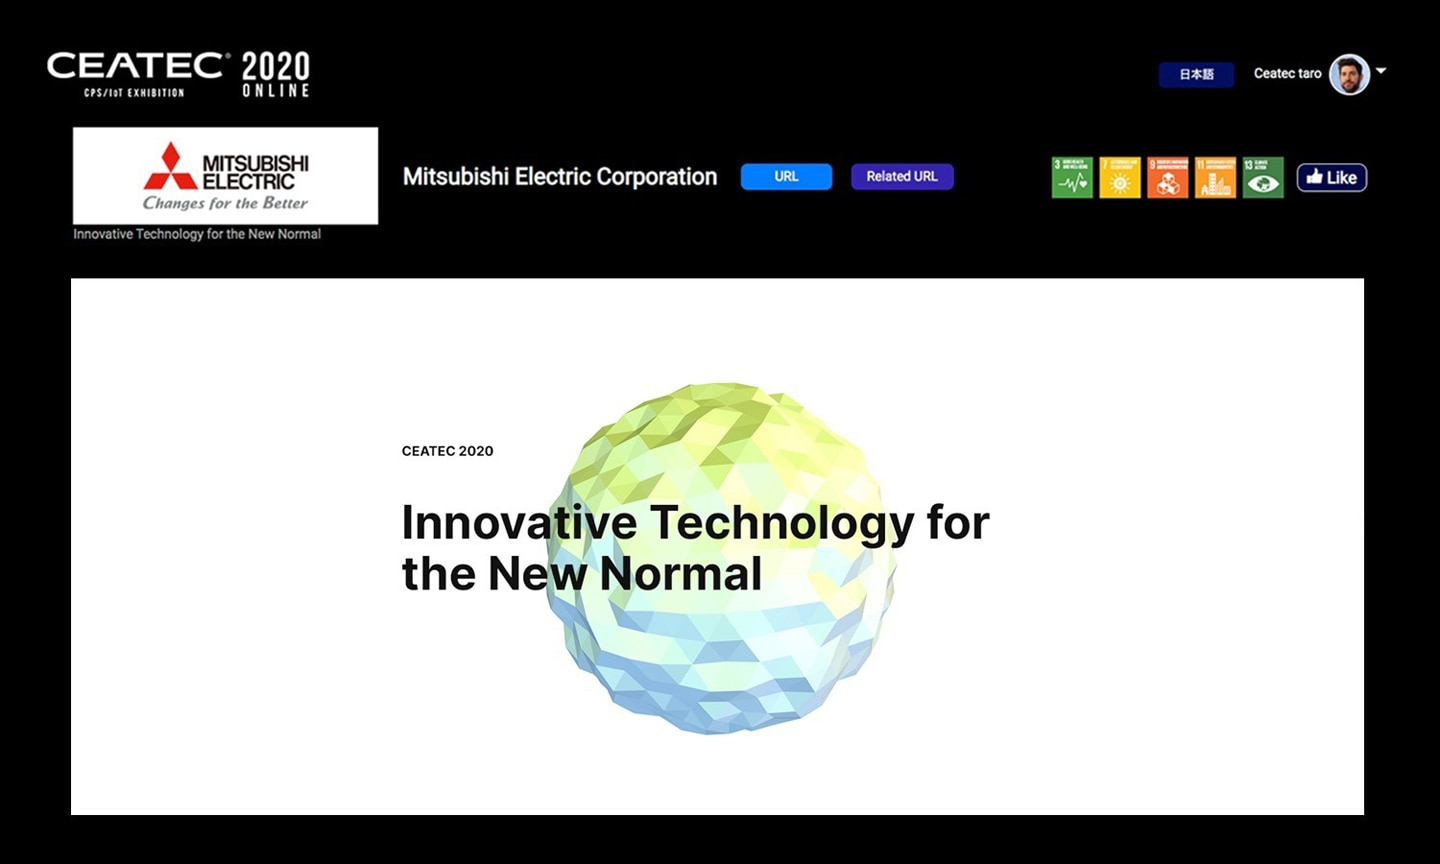 Mitsubishi Electric's page on CEATEC 2020 ONLINE website